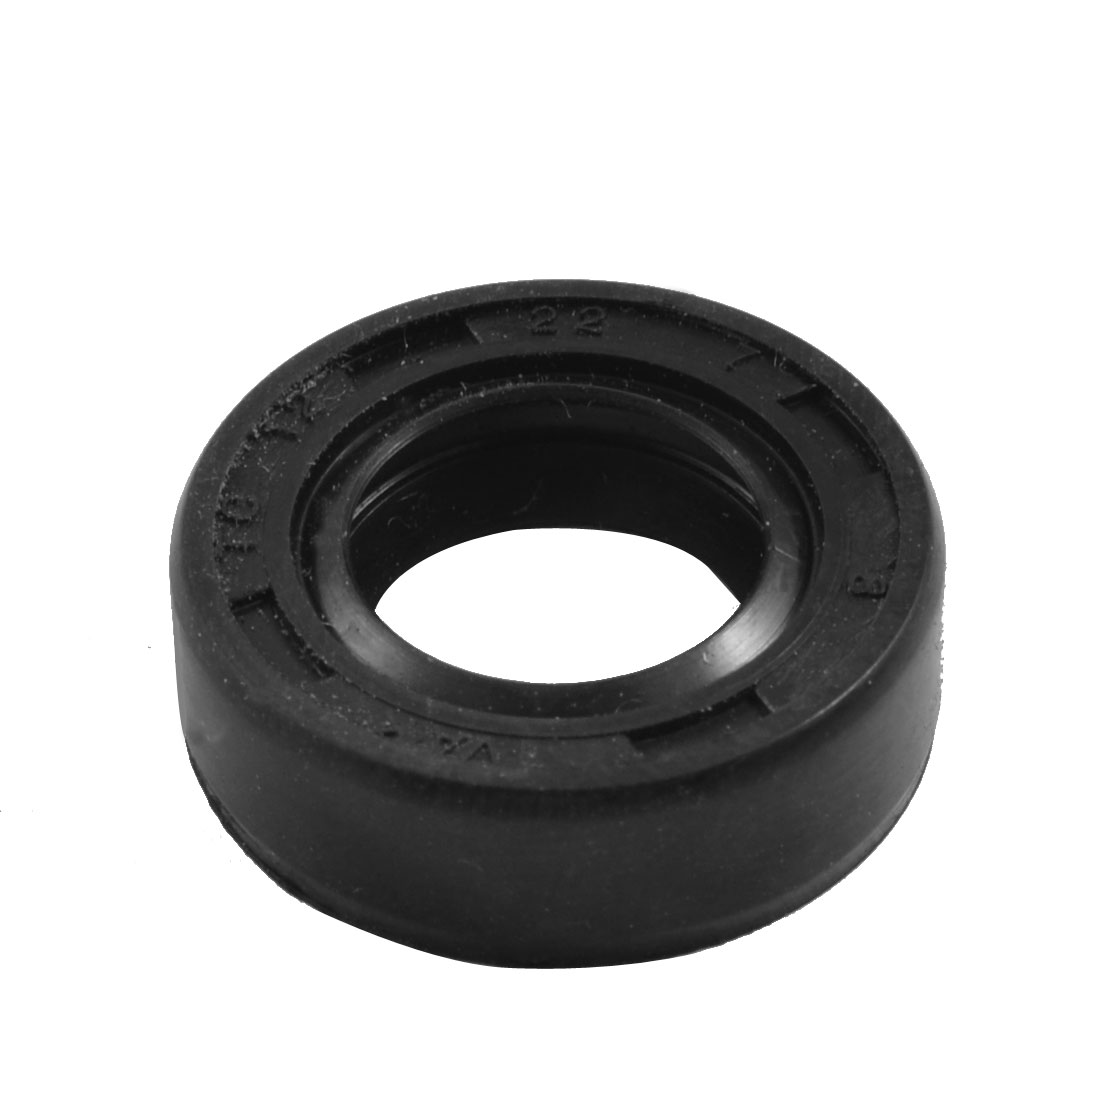 12mm x 22mm x 7mm Metric NBR Double Lipped Oil Shaft Seal TC